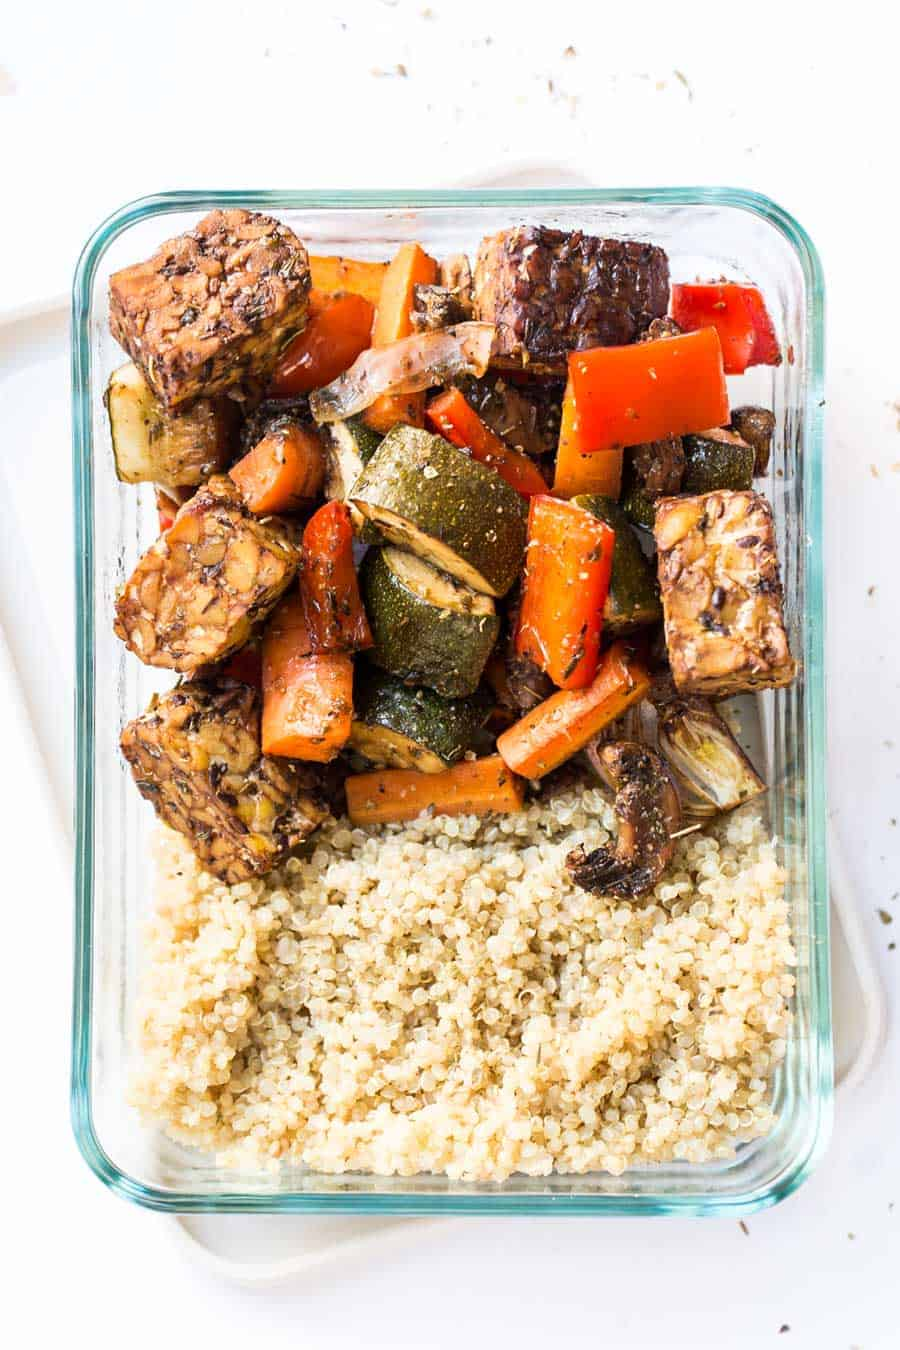 An overhead shot of quinoa, tempeh and veggies in a glass storage container.